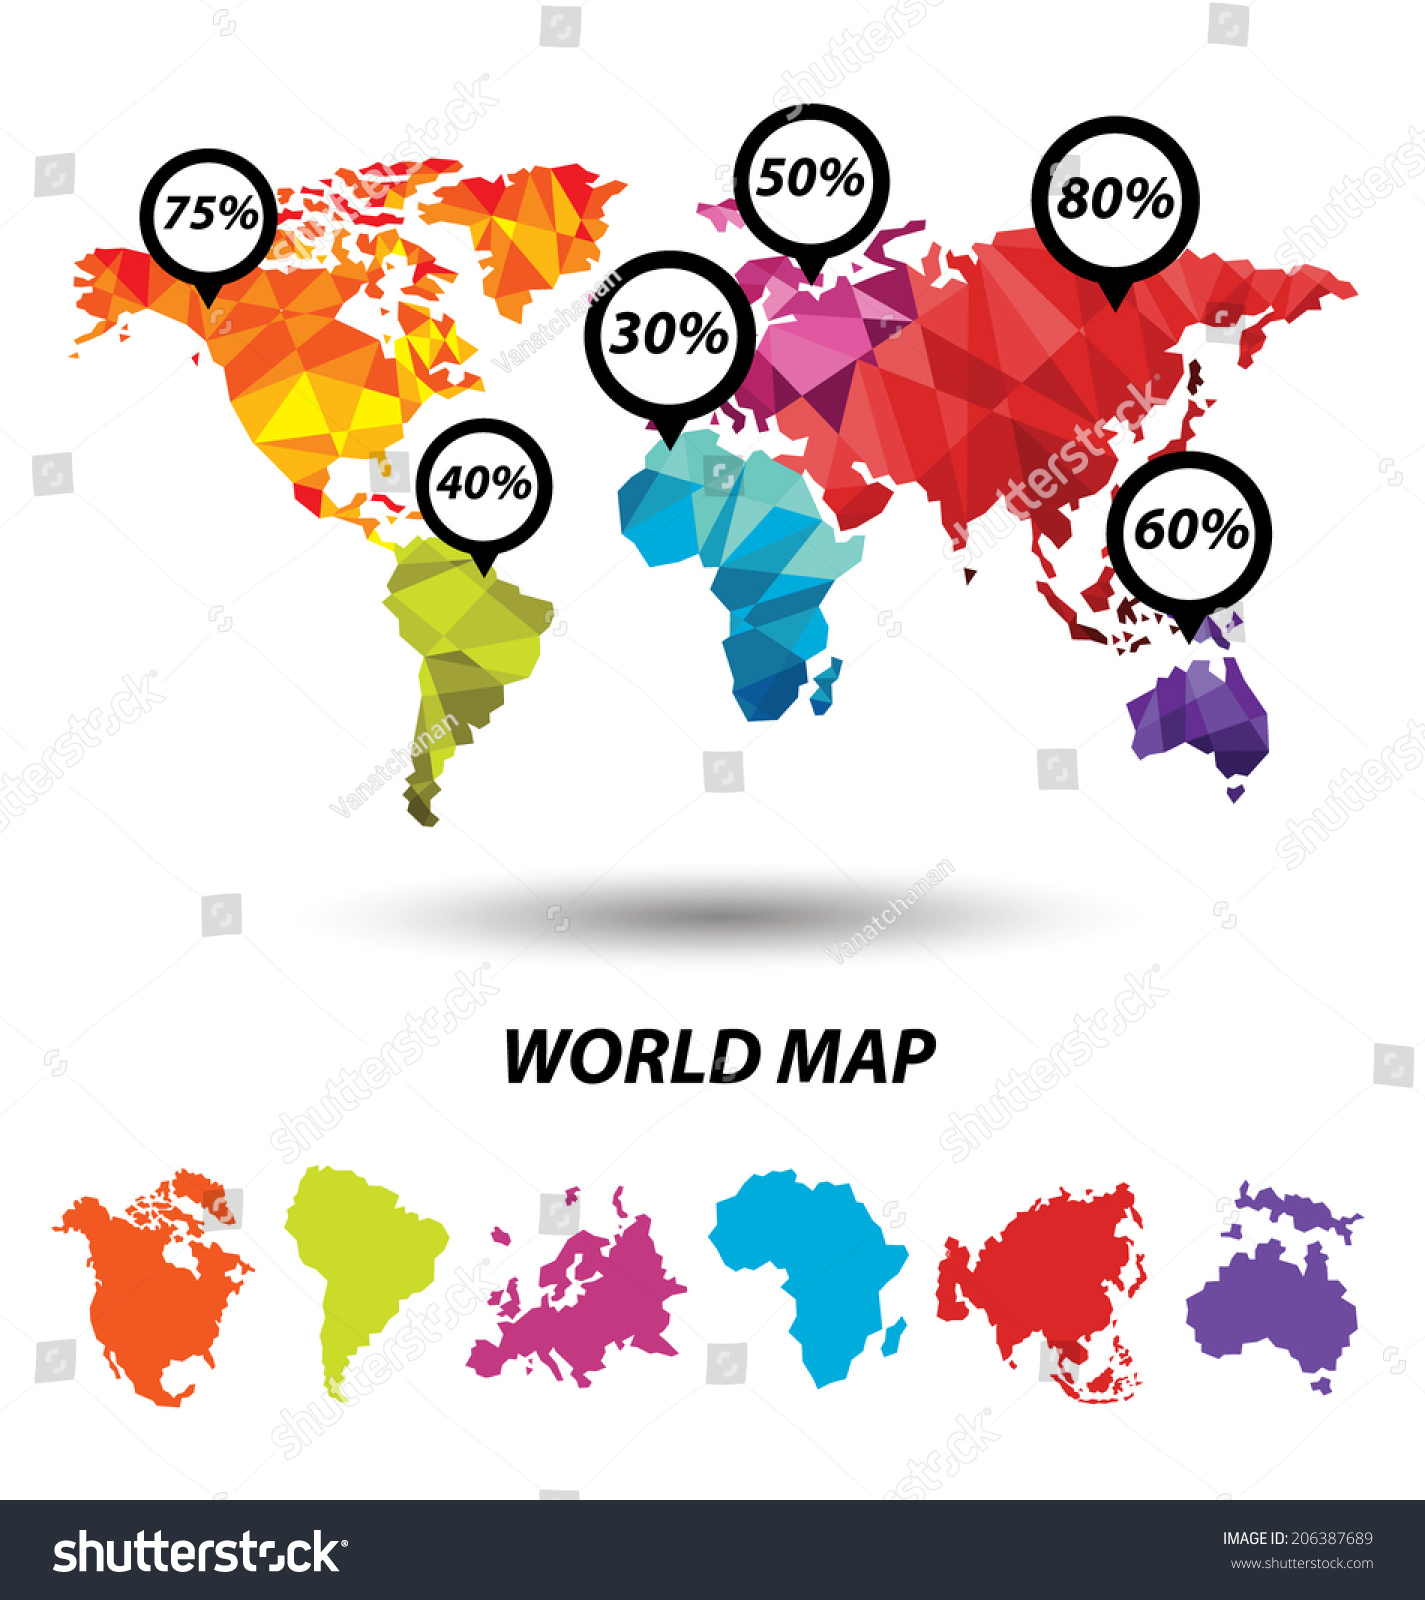 World map geometric concept design stock vector hd royalty free world map geometric concept design gumiabroncs Images